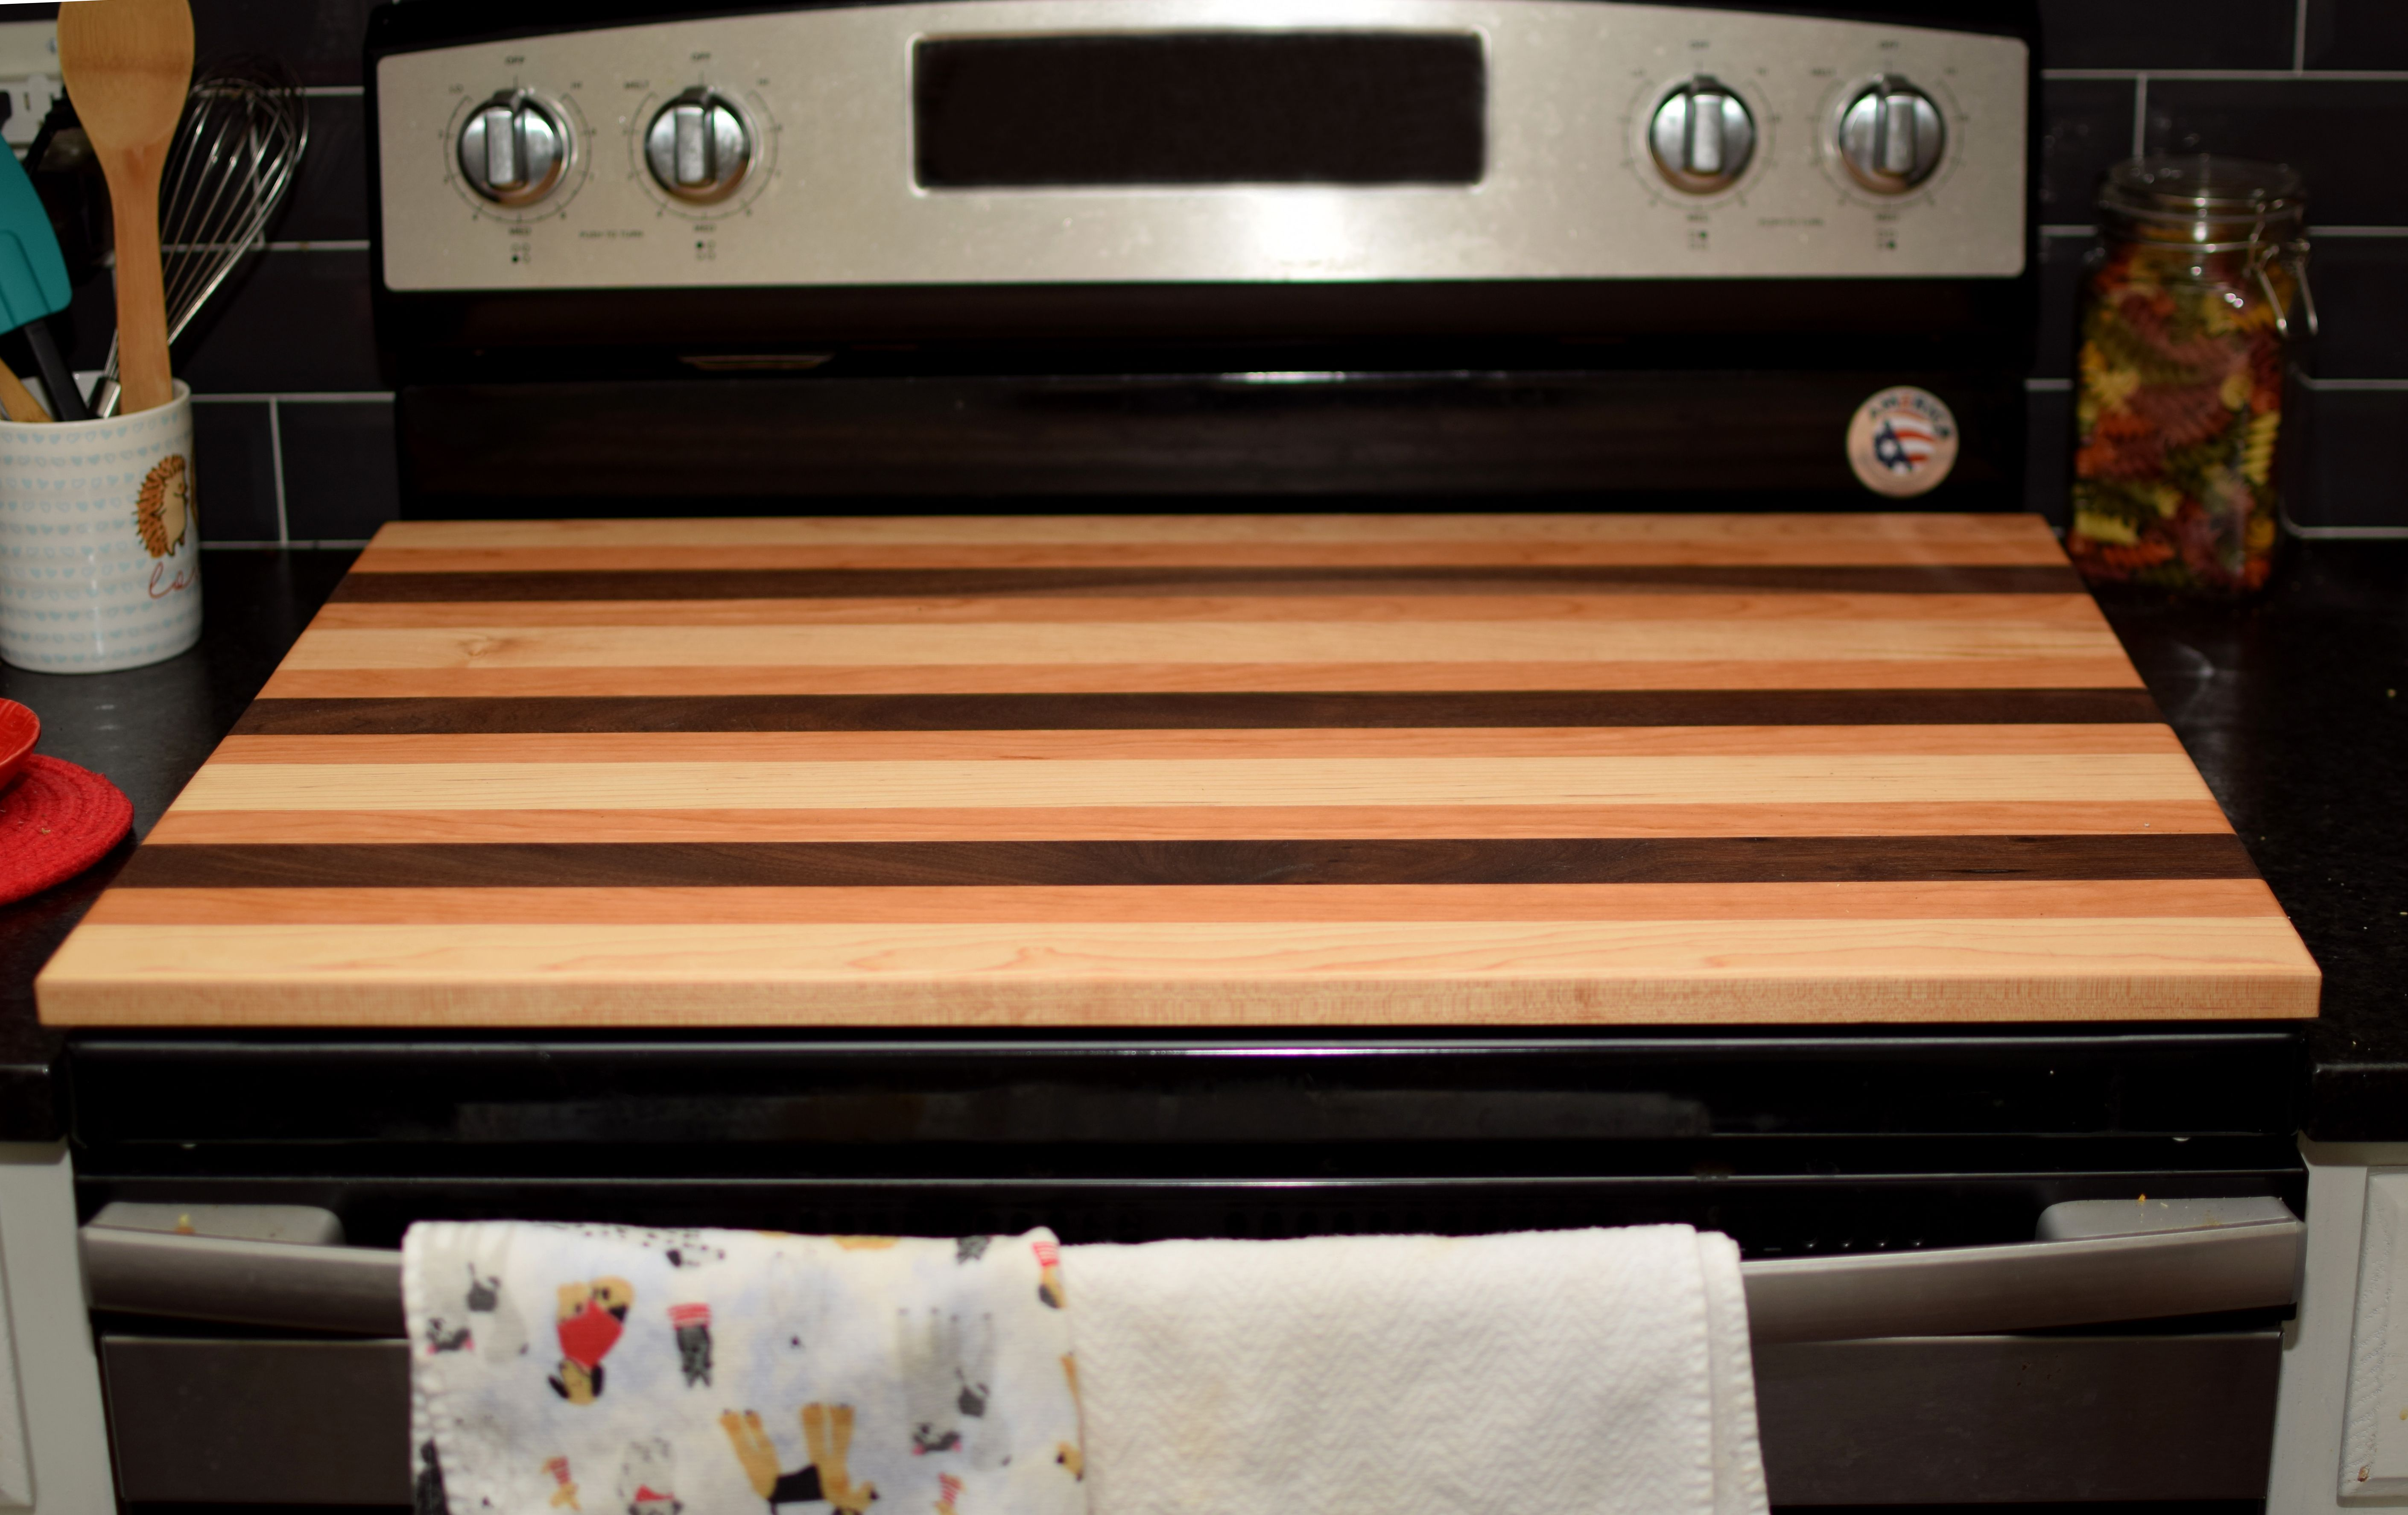 Custom Stove Top Cover Wooden Noodle Board Custom Stove Cover Expands Counter Space Serving Tray Farmhouse Decor Great Mother Gift Stove Top Cover Stove Noodle Board